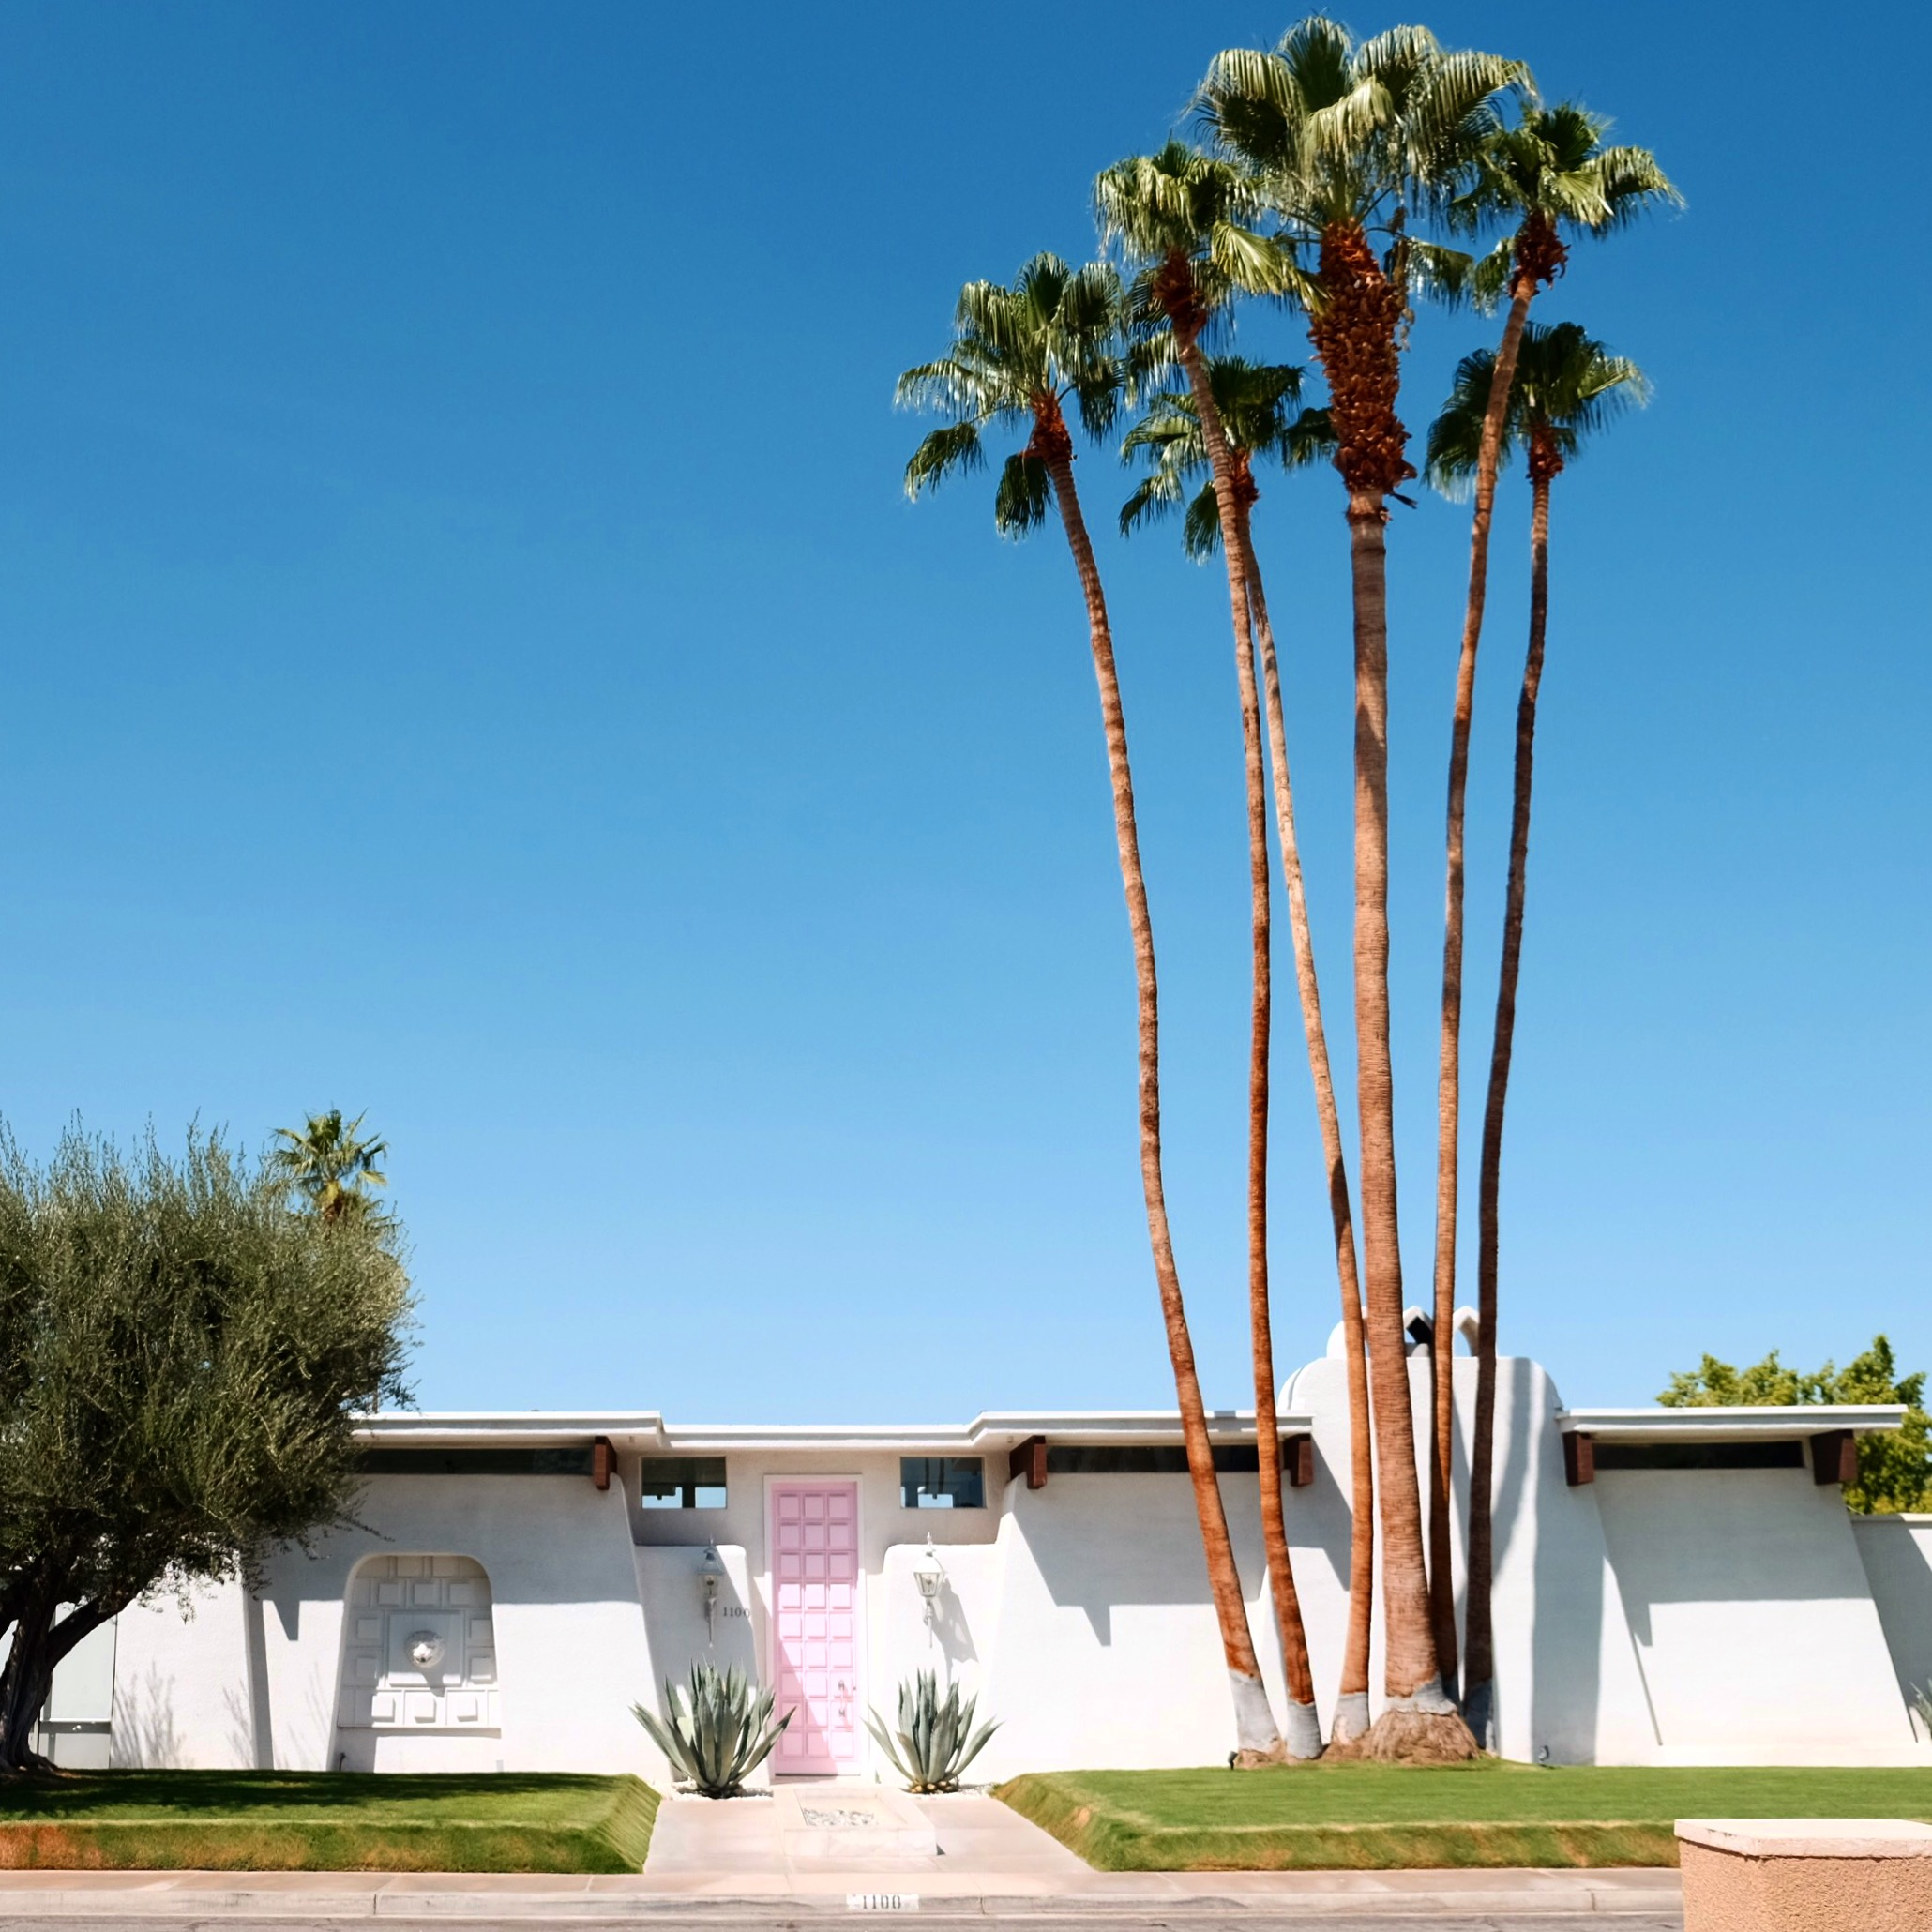 Weekend getaway palm springs travel guide that for Travel to palm springs